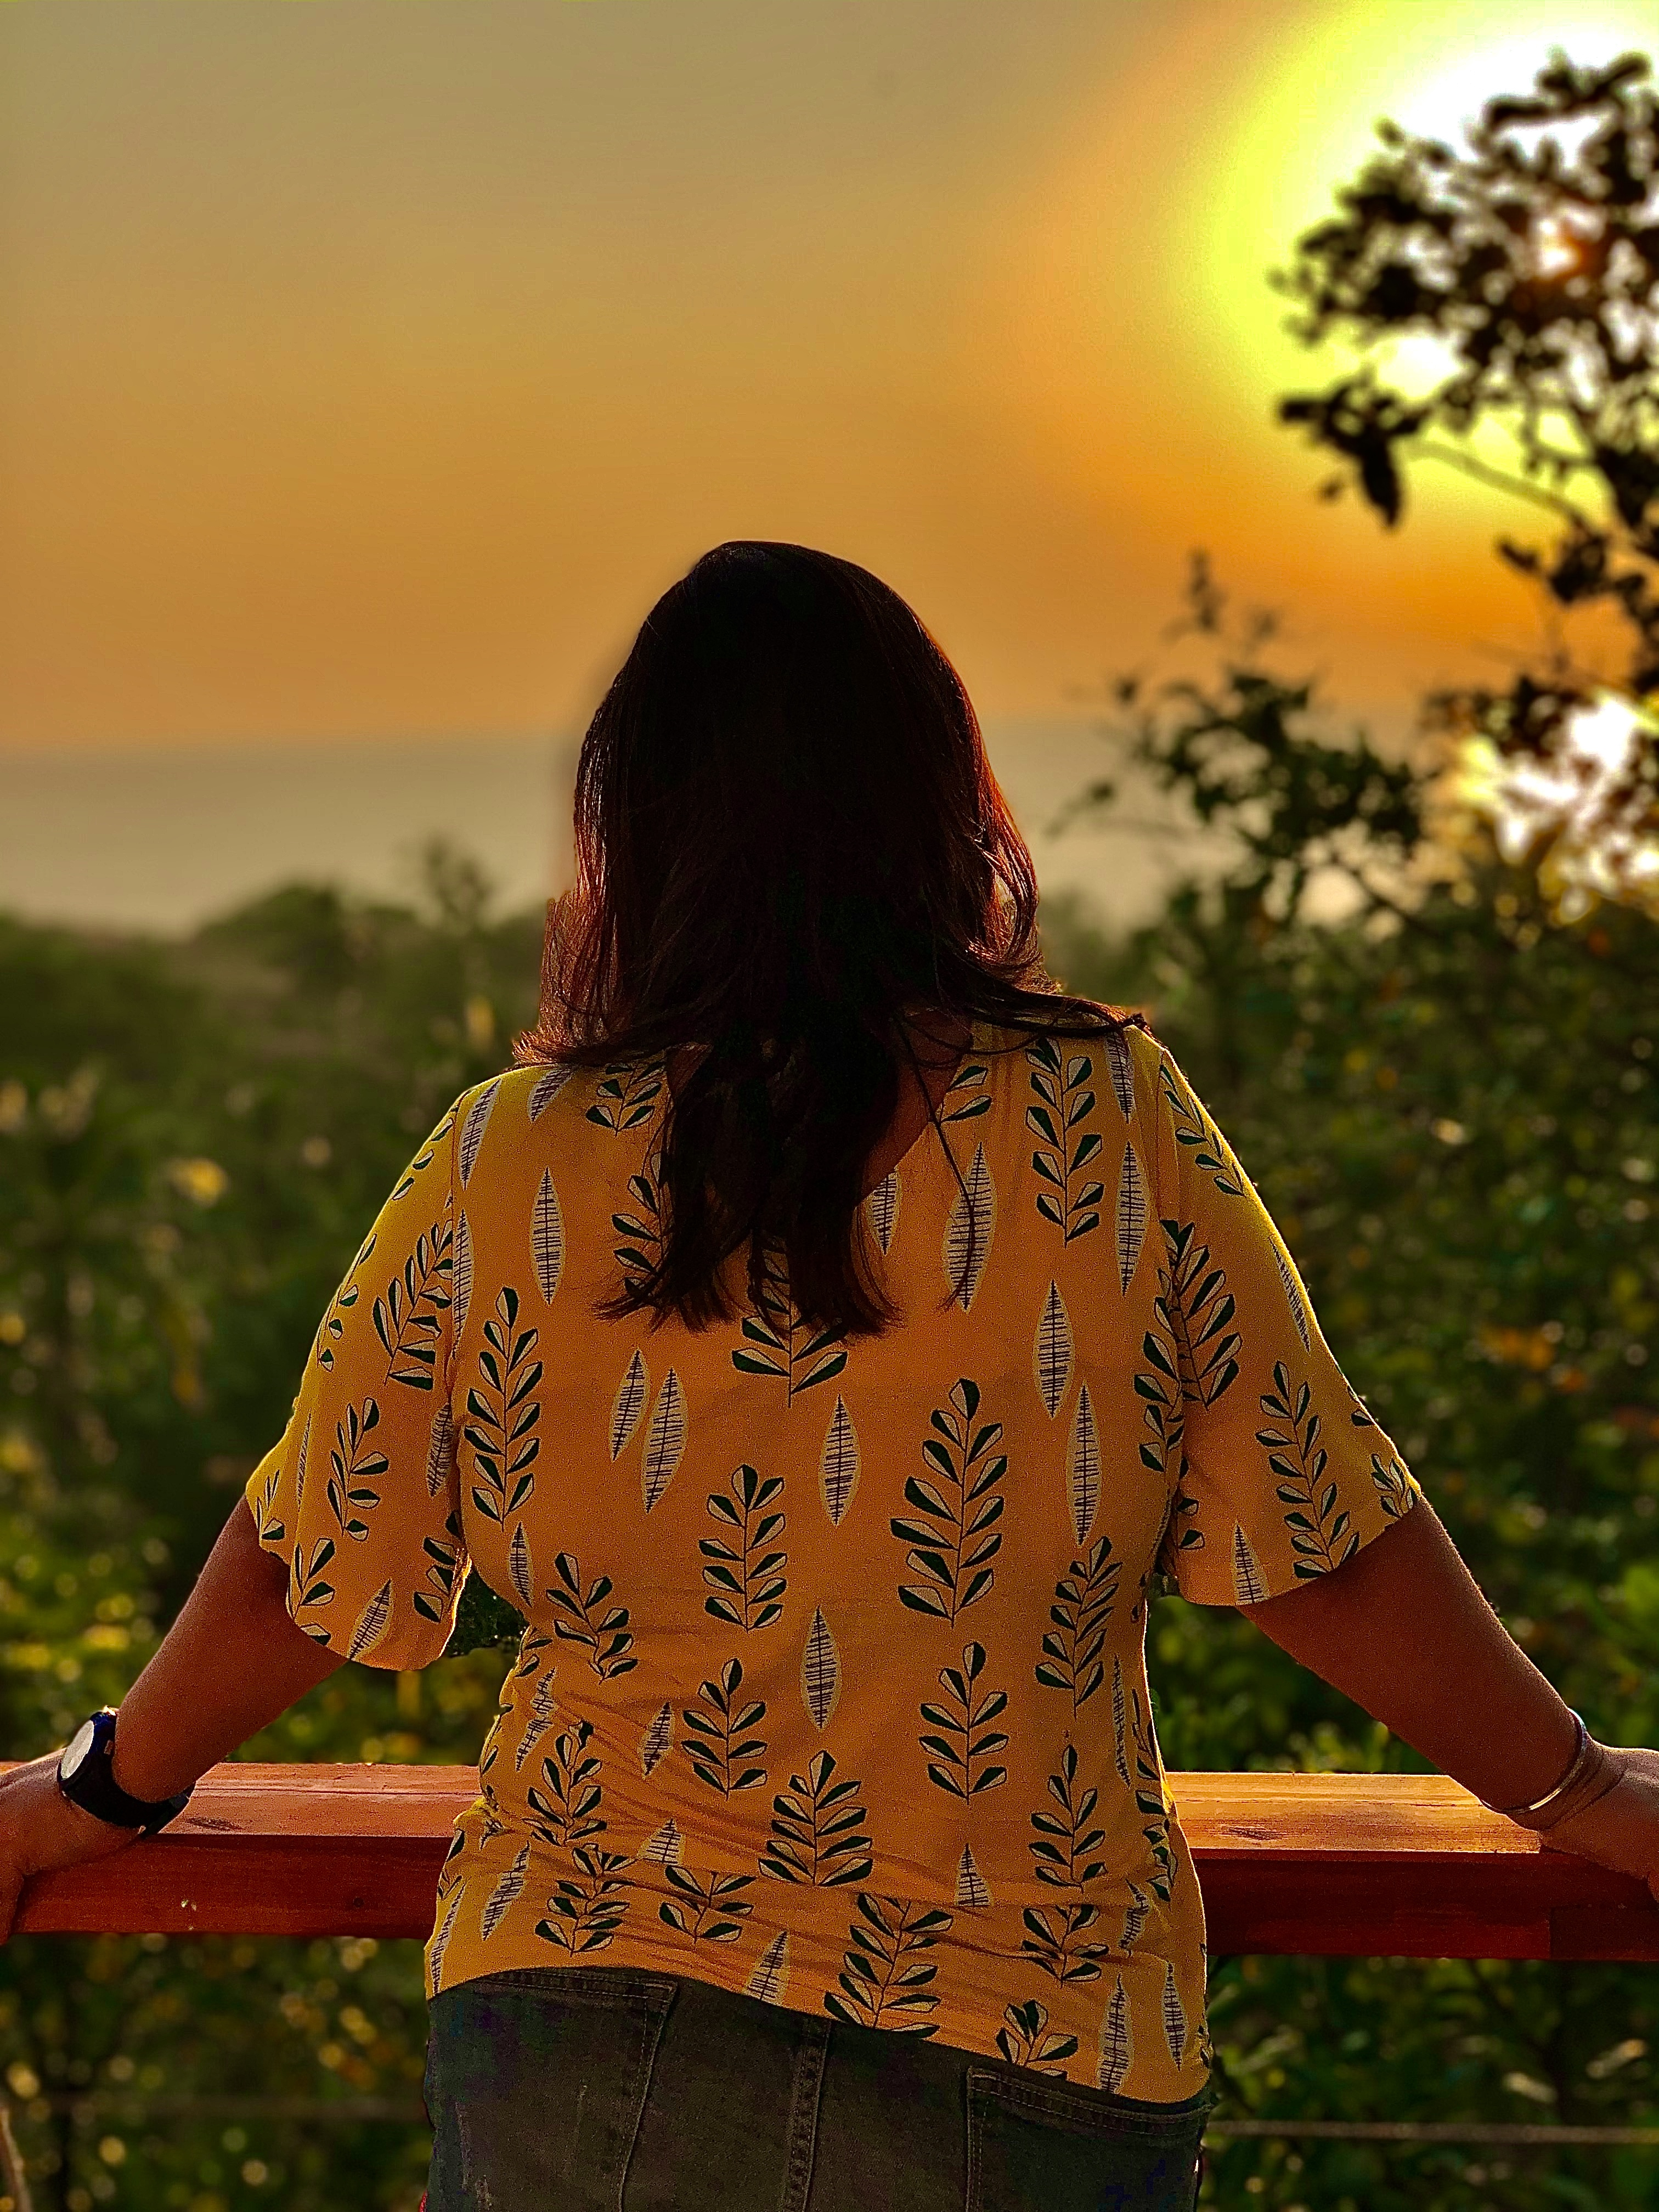 Cabo Serai-A getaway, that's a gateway to luxury amidst nature!